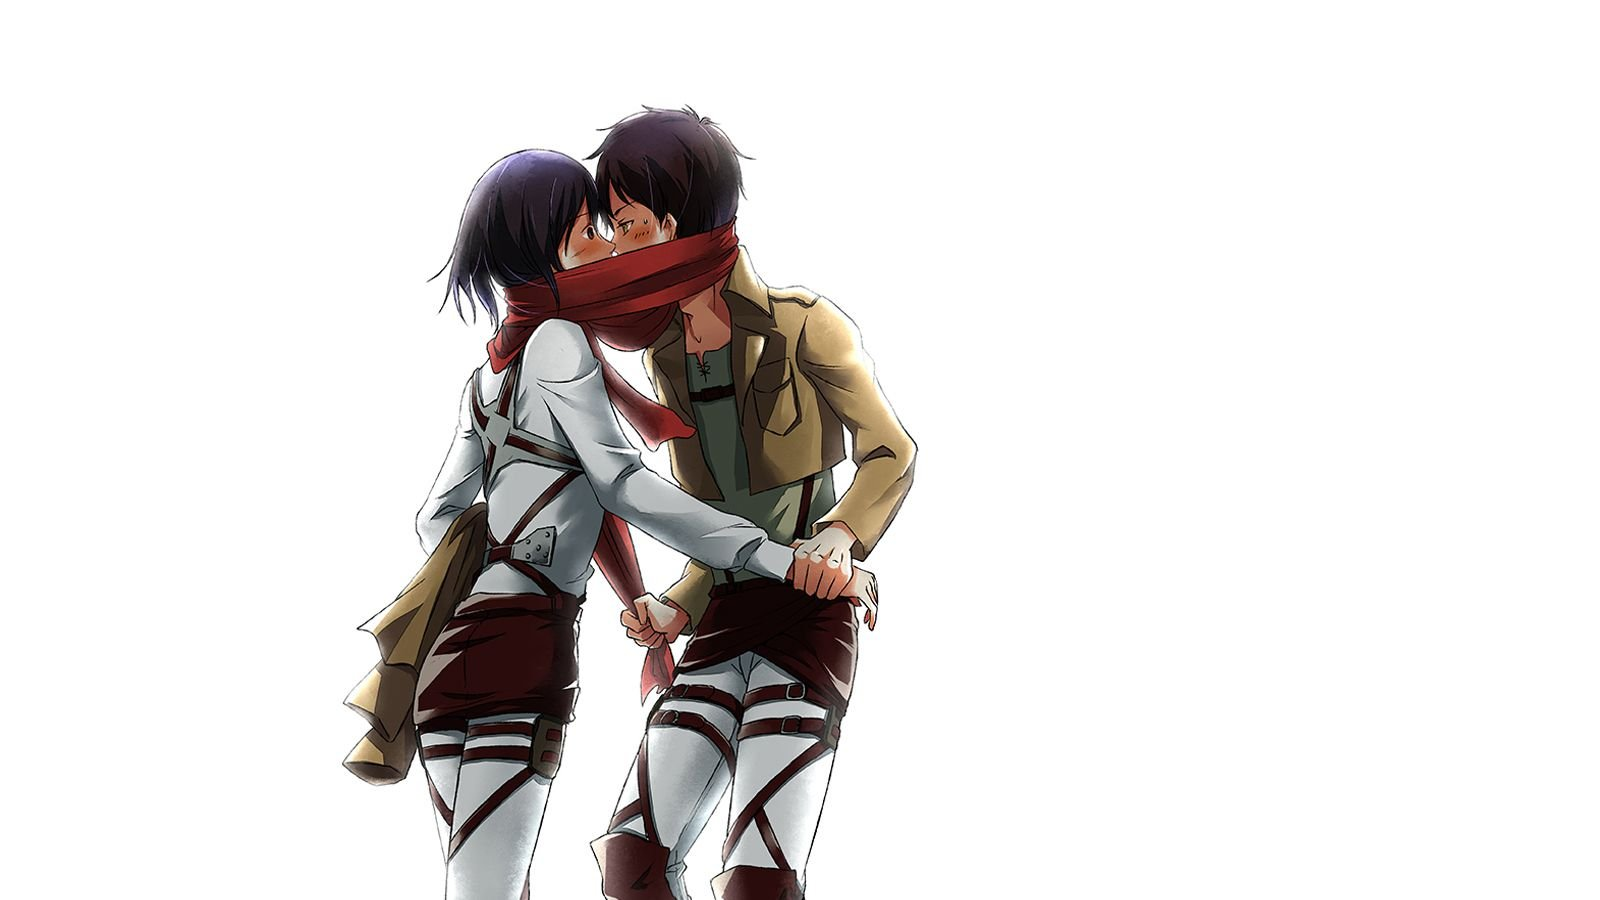 Attack On Titan Eren And Mikasa Wallpapers Top Free Attack On Titan Eren And Mikasa Backgrounds Wallpaperaccess